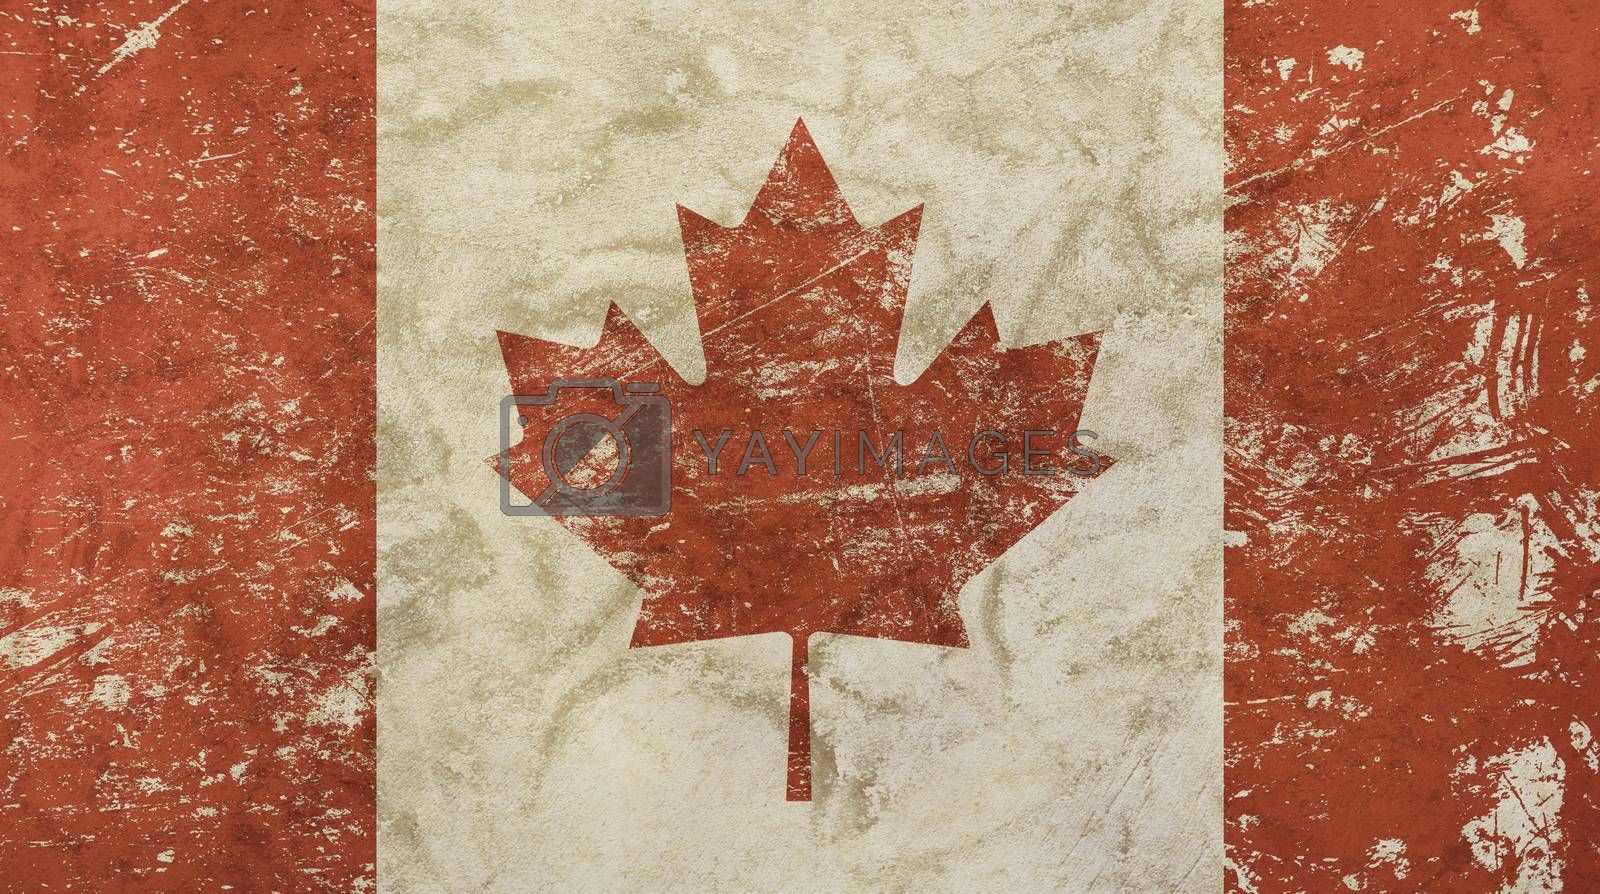 Old grunge vintage dirty faded shabby distressed Canadian Canada flag with red maple leaf over white background